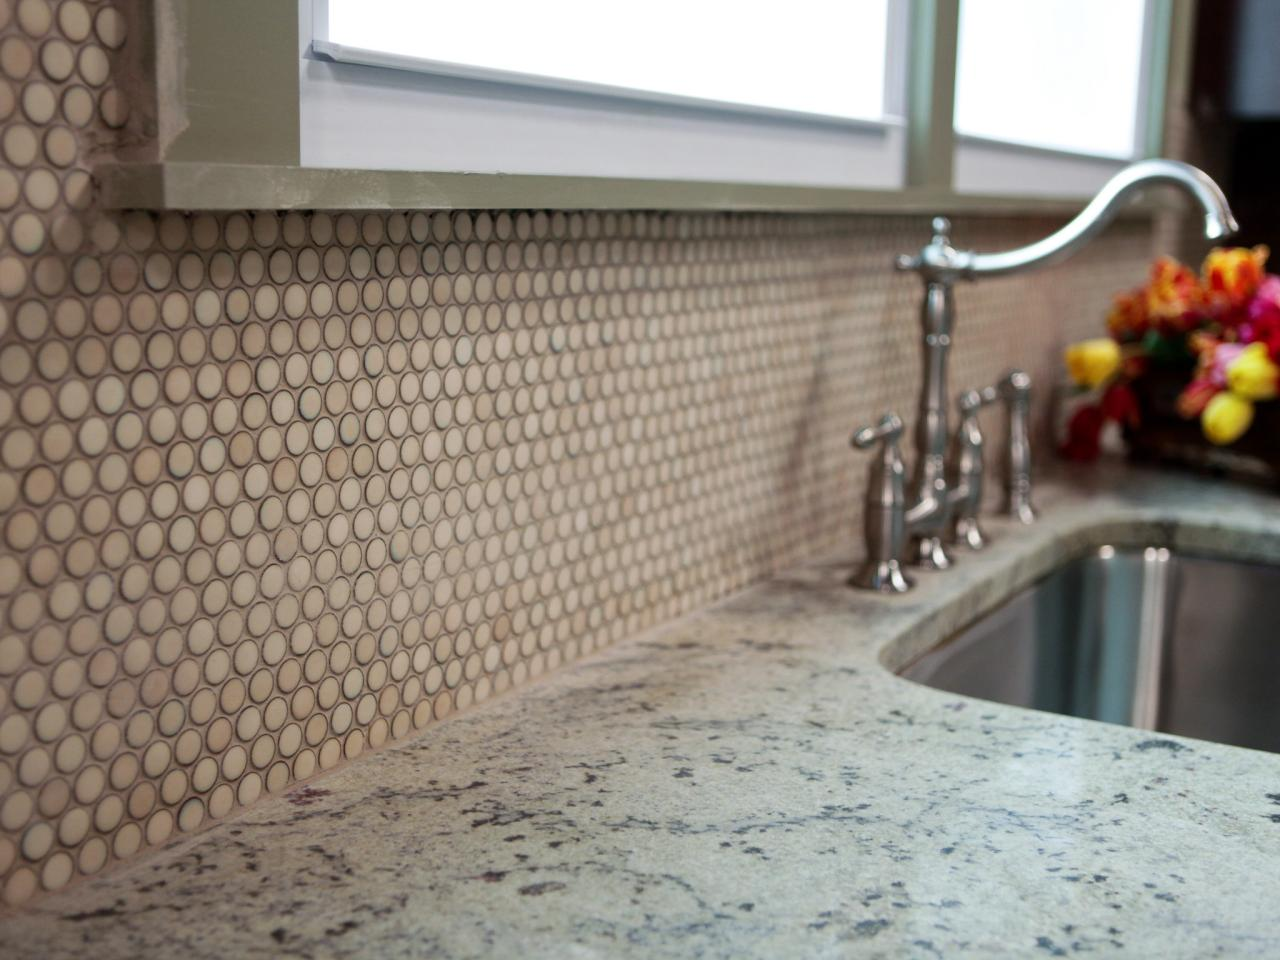 mosaic tile backsplash ideas: pictures & tips from hgtv | hgtv